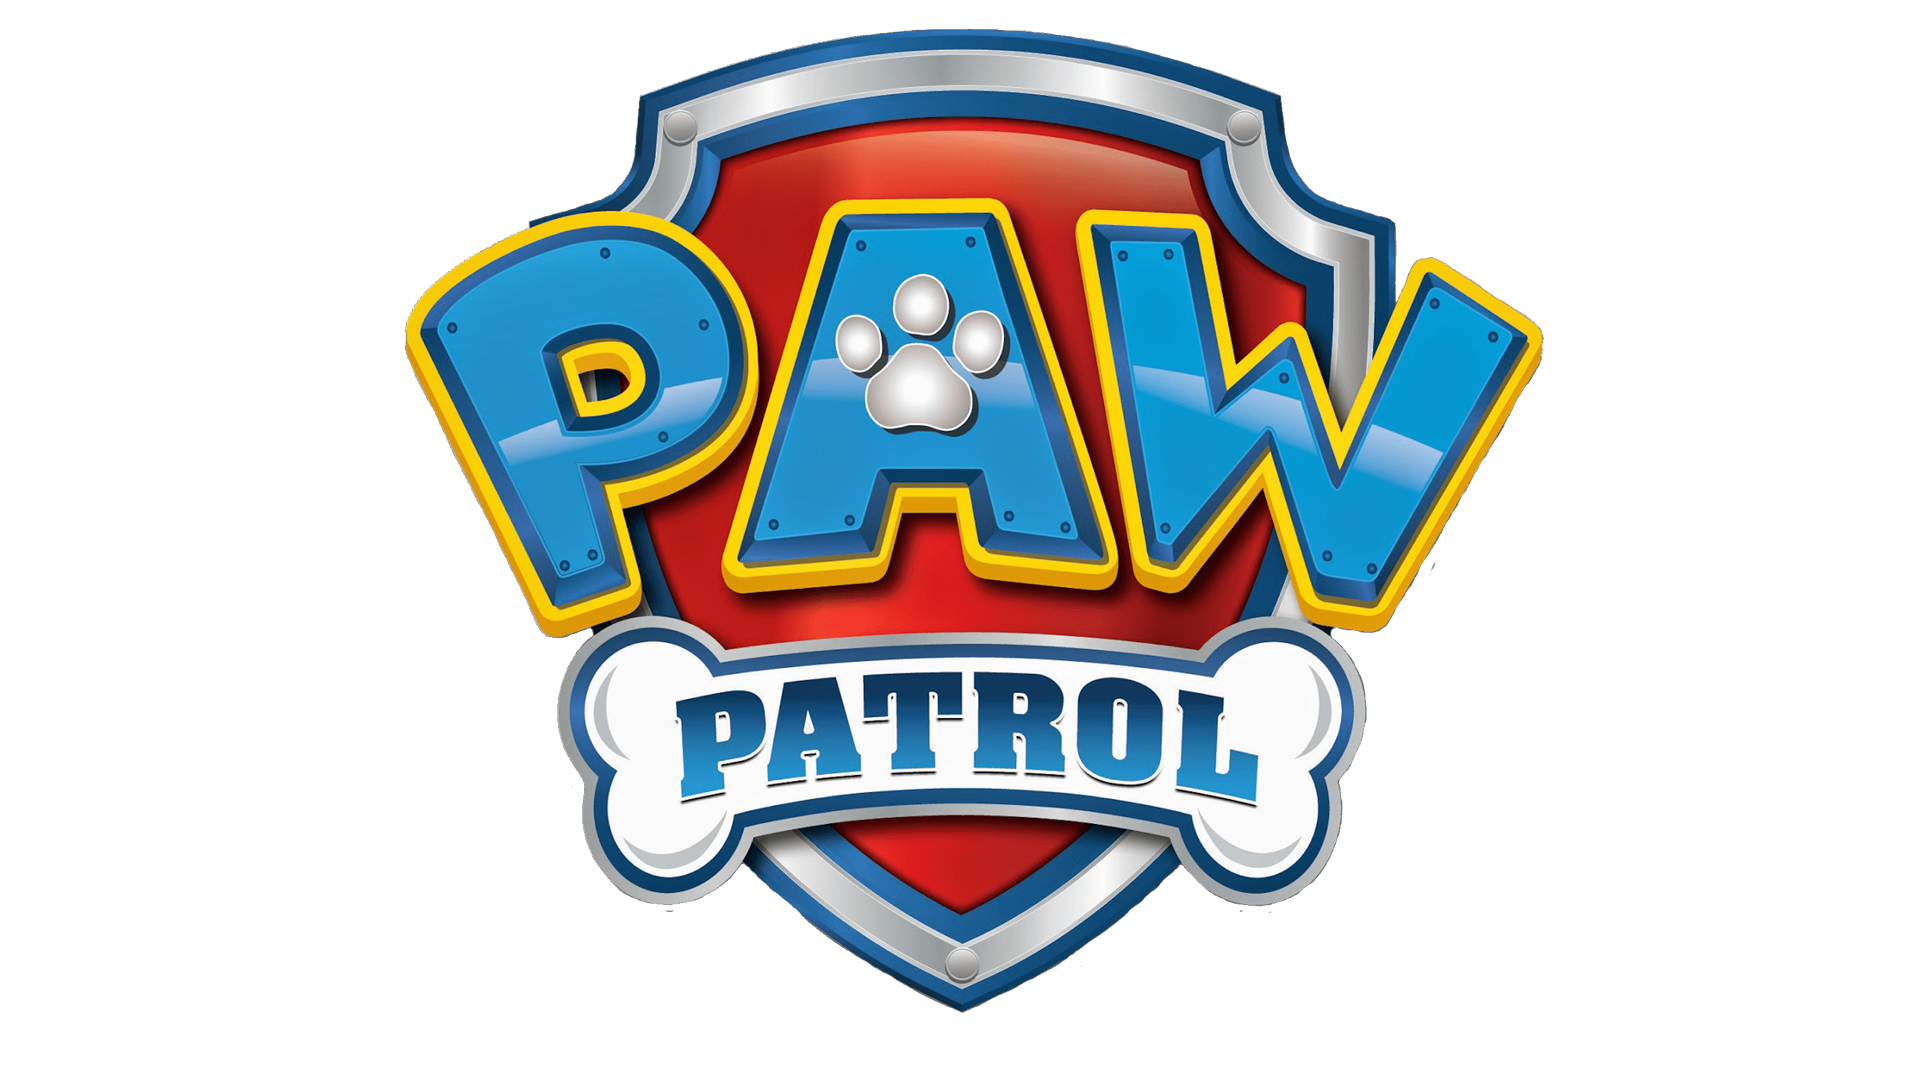 Logo paw patrol png. Symbol meaning history and